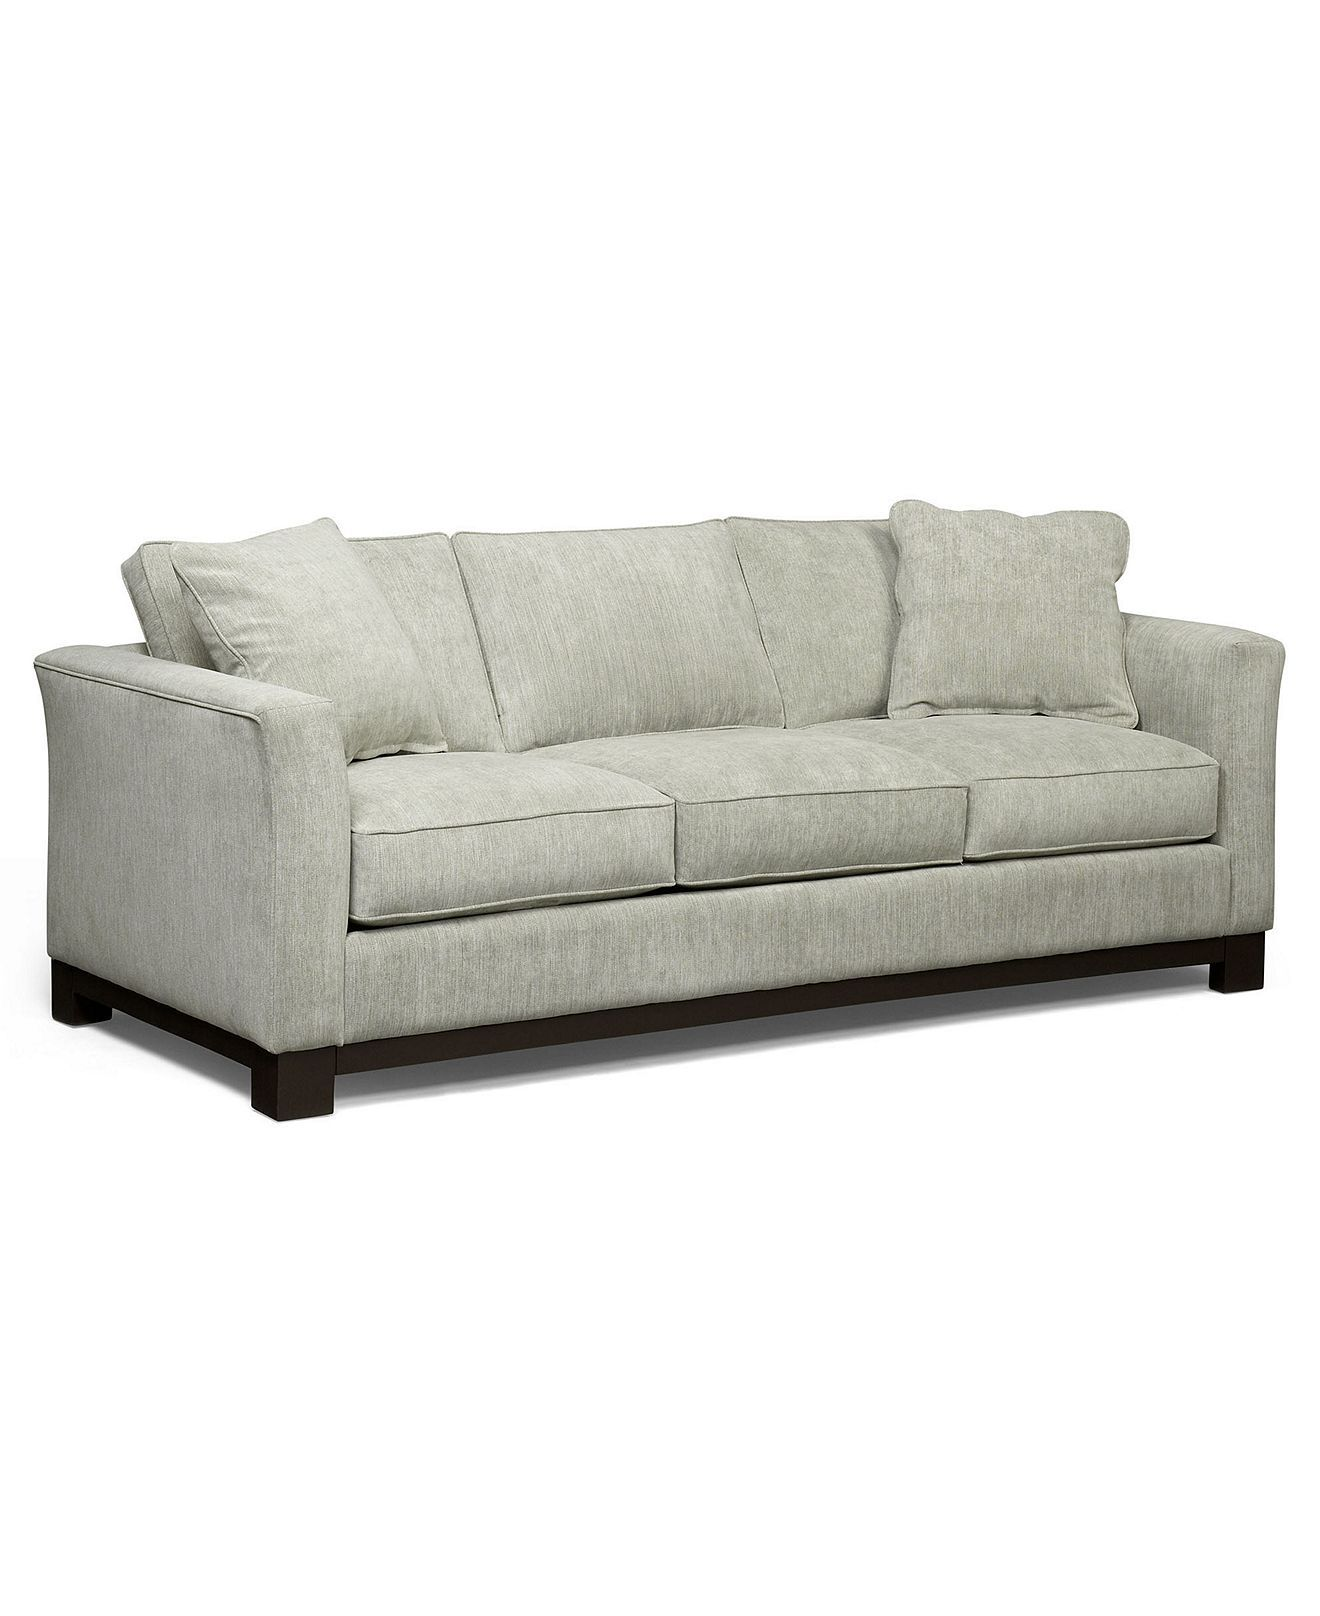 Kenton 88 Fabric Sofa Created for Macyu0027s